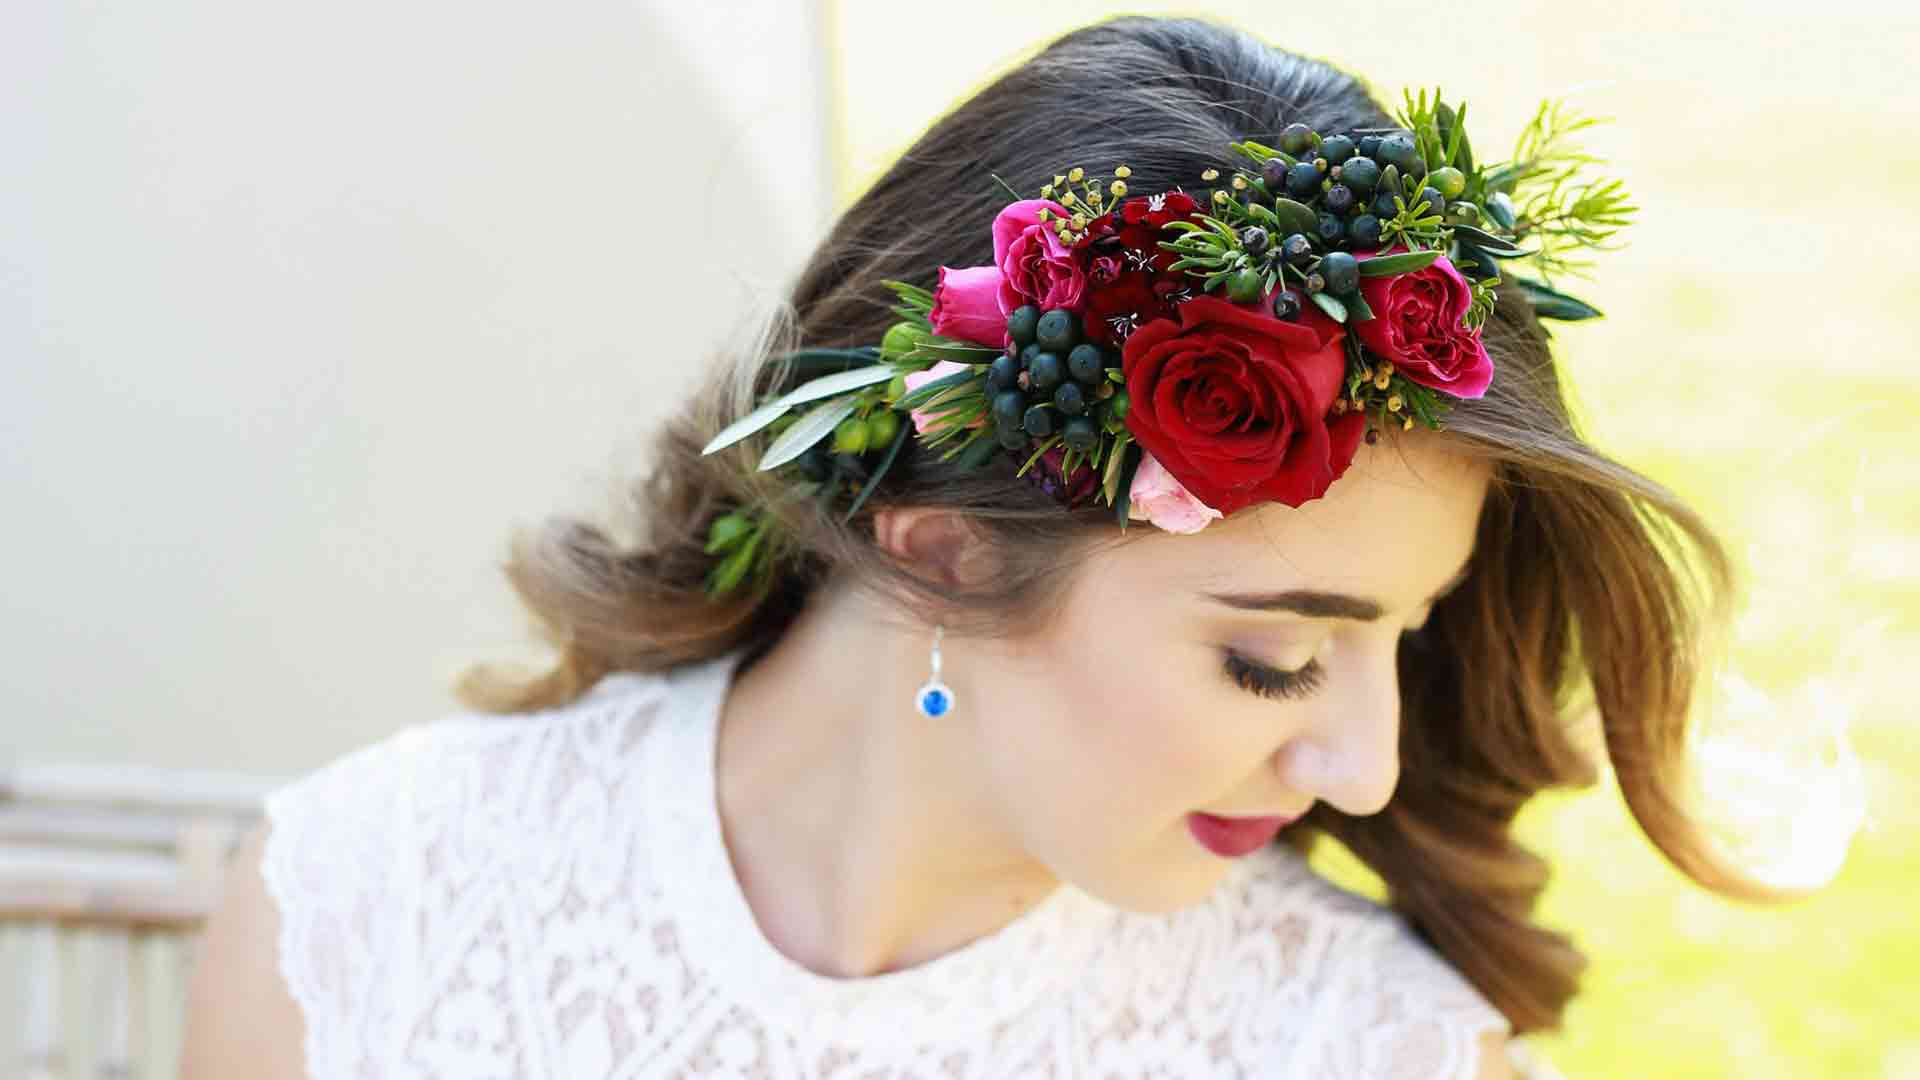 Flower power: How to make Queen Bey's floral crown